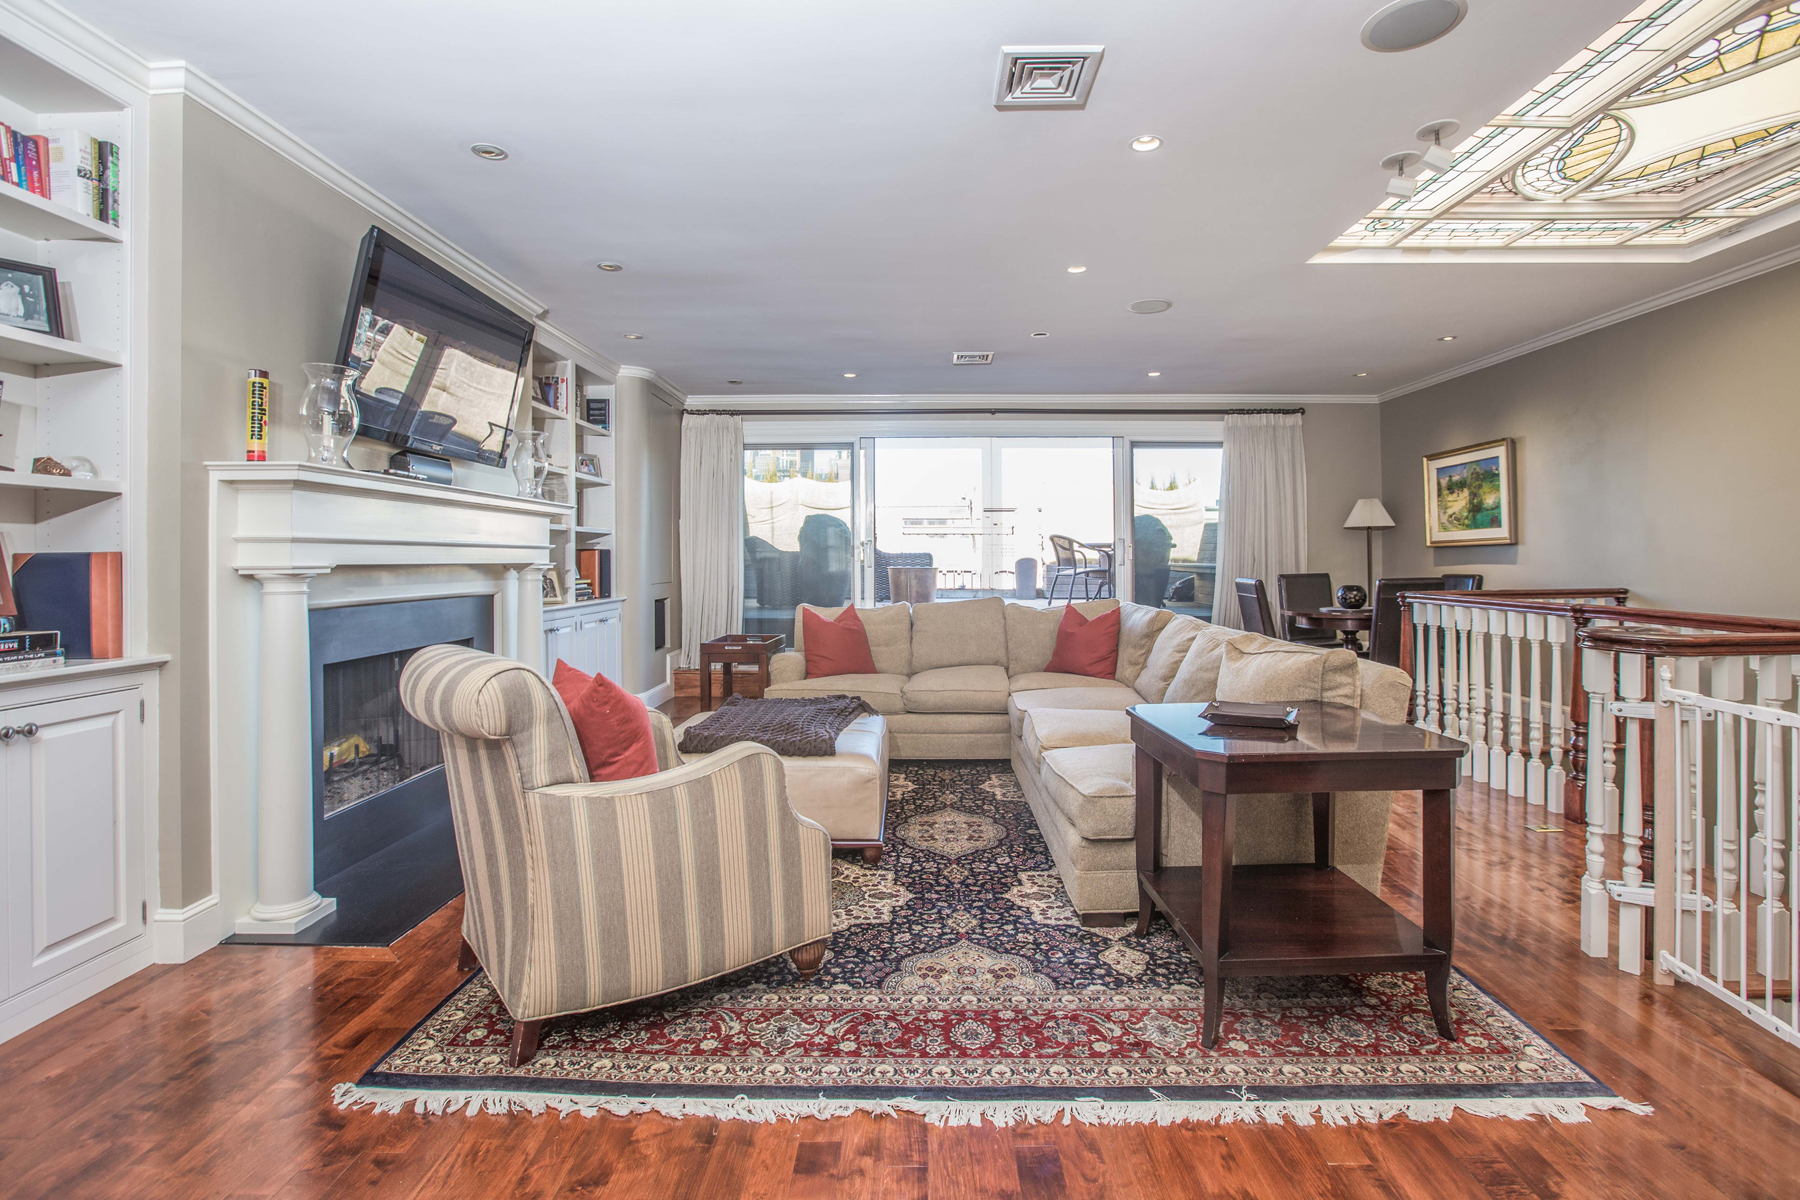 Condominium for Sale at Stunning Three Bedroom Penthouse 254 Marlborough Street Unit 3 Boston, Massachusetts 02116 United States